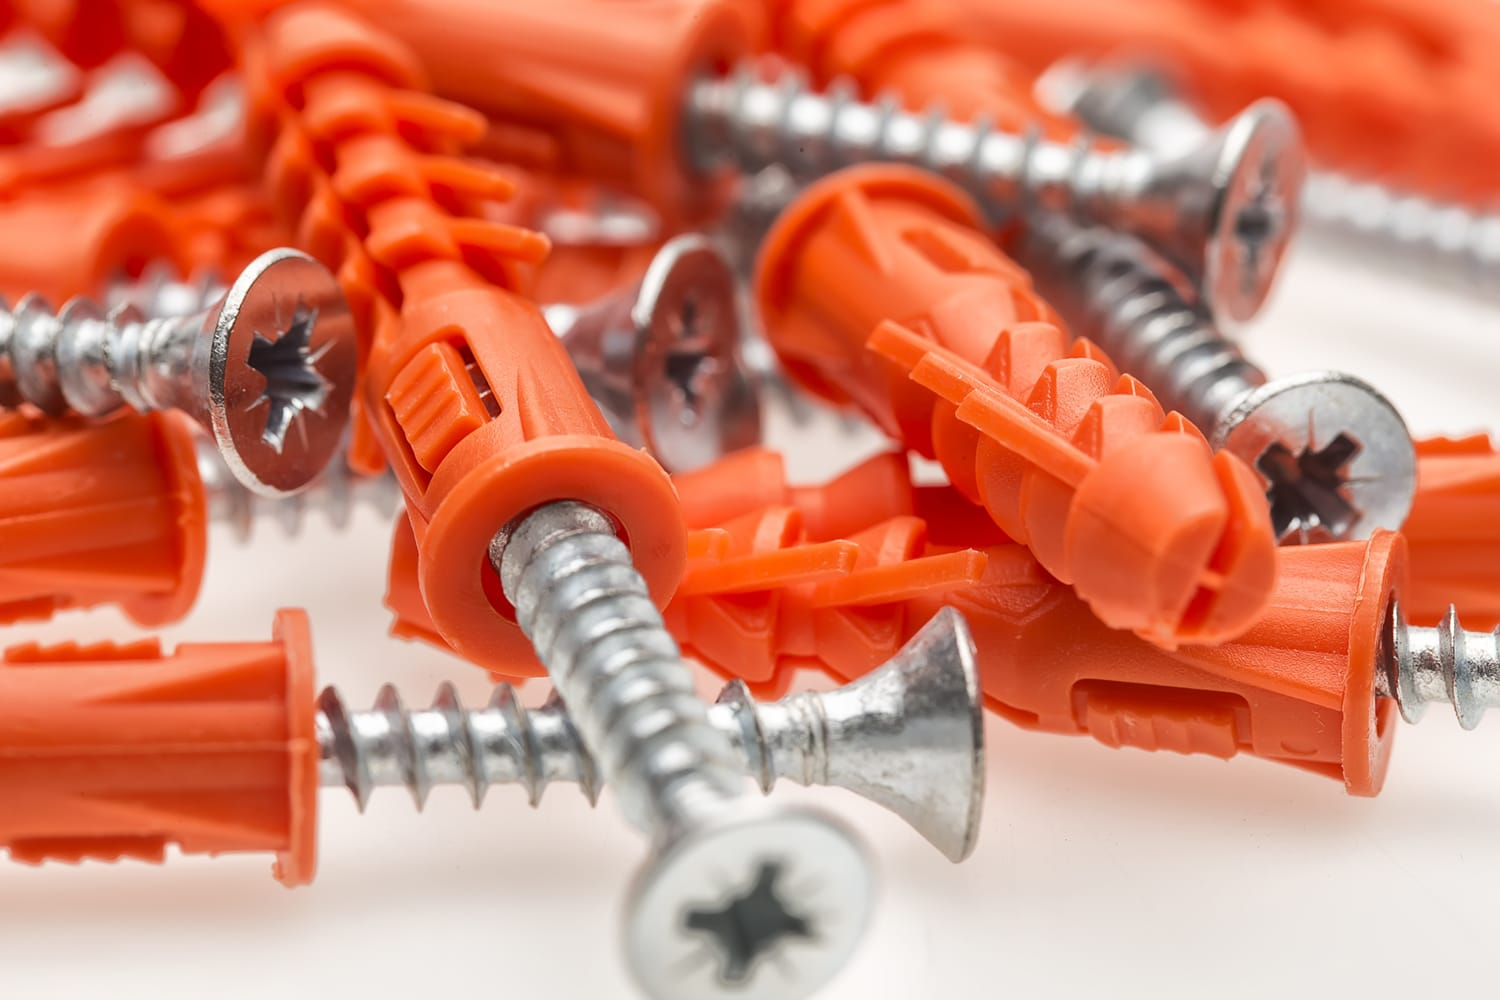 This is a cover photo for our Best Wall Anchors article. It features a pile of orange wall anchors with preset screws inserted.